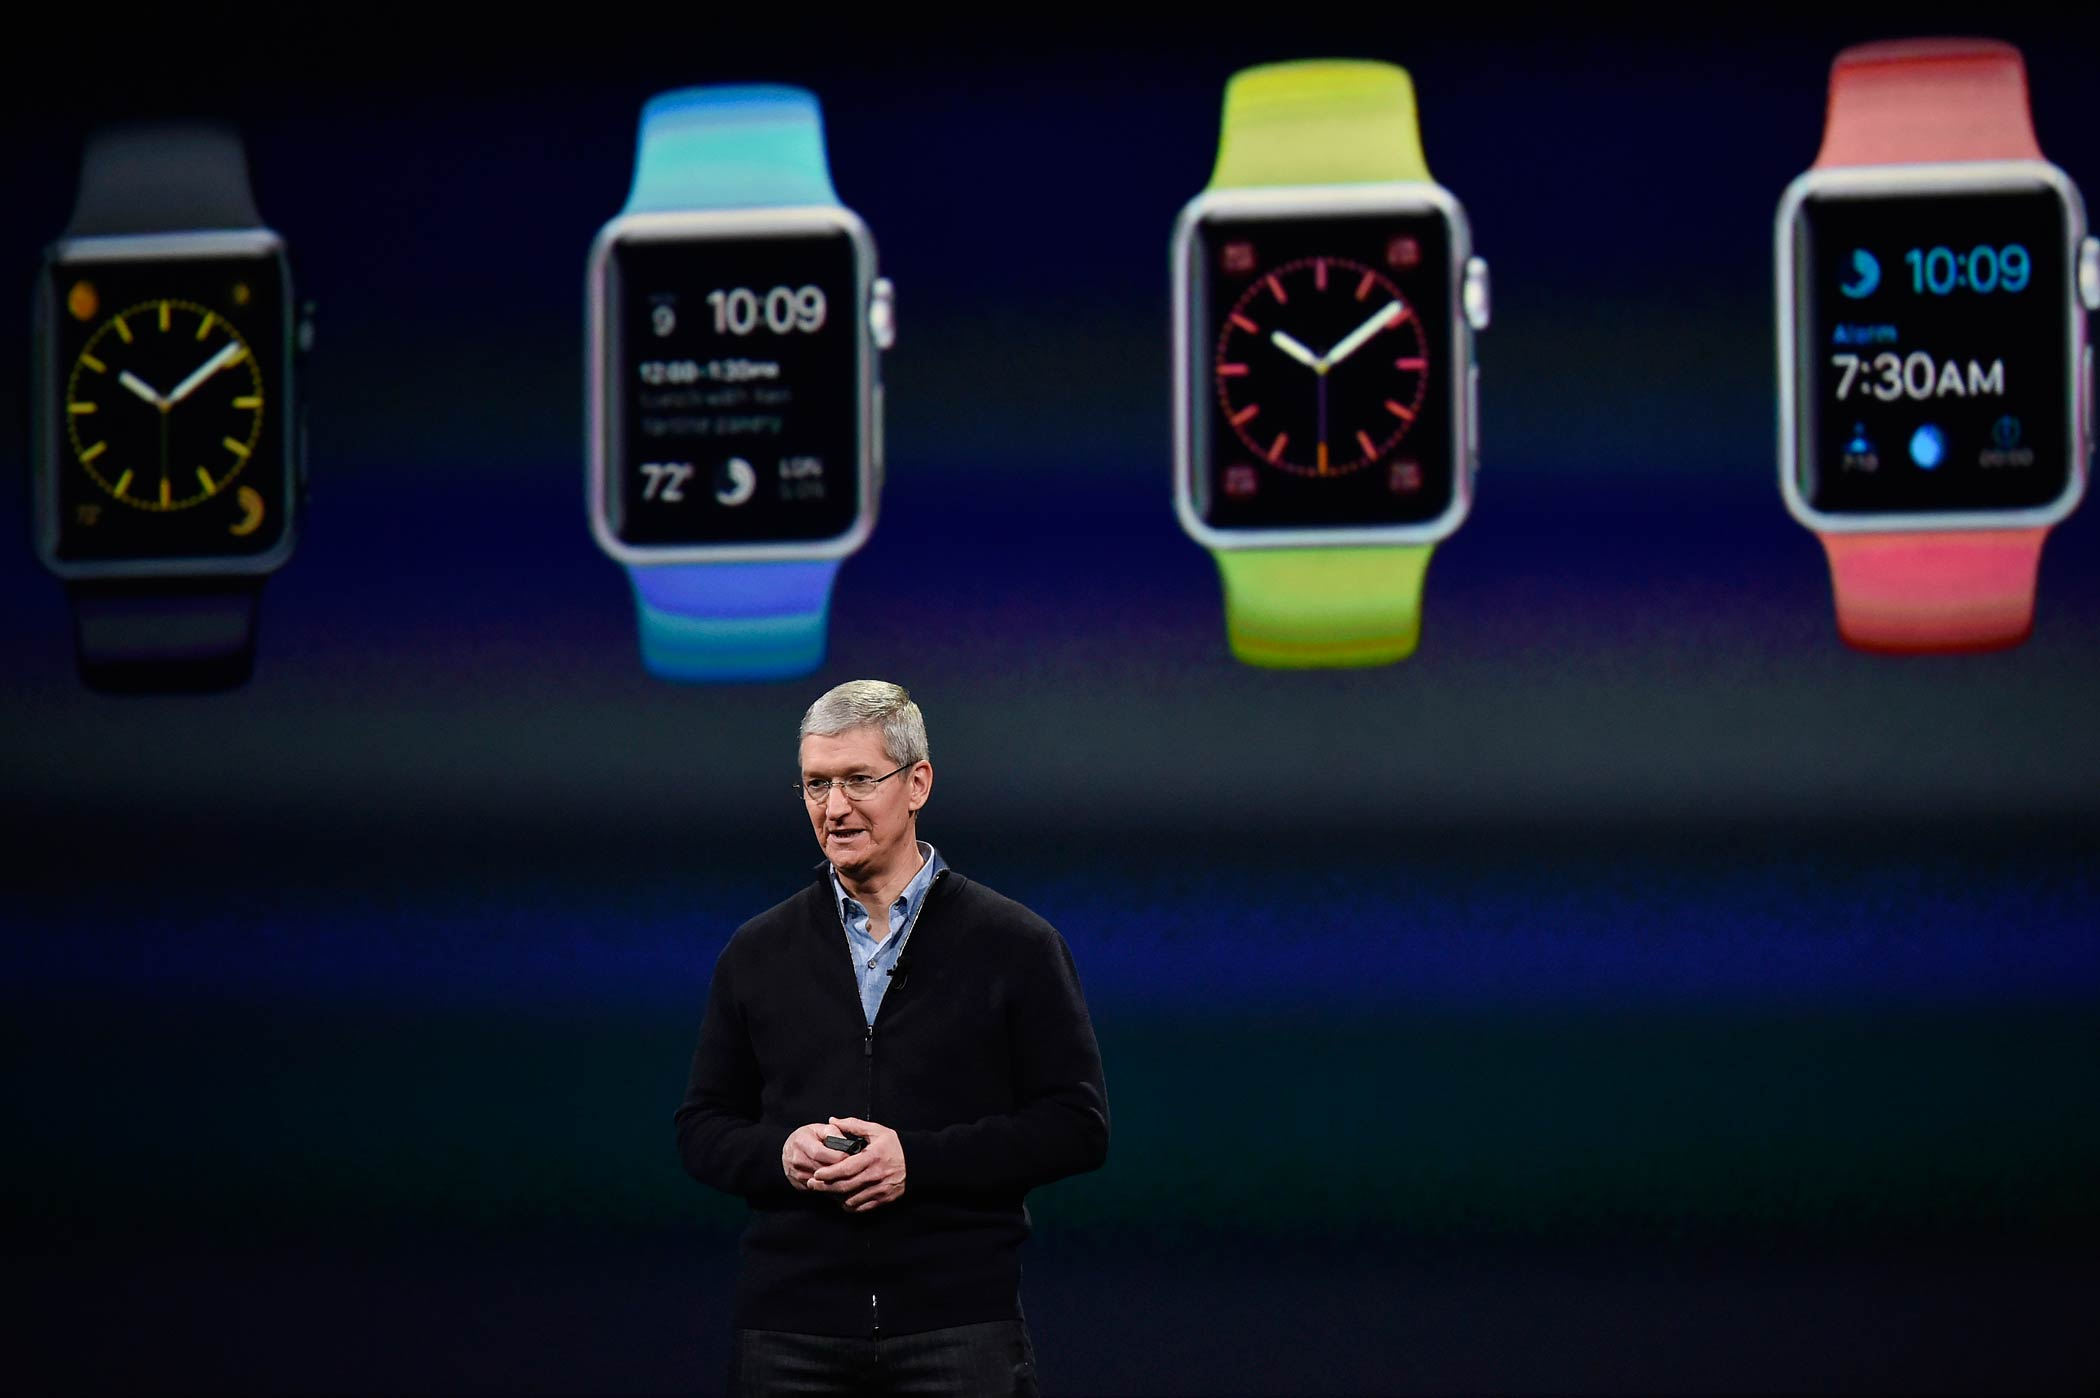 Tim Cook, CEO of Apple, speaks during the Apple Inc. Spring Forward event in San Francisco, Calif. on March 9, 2015.